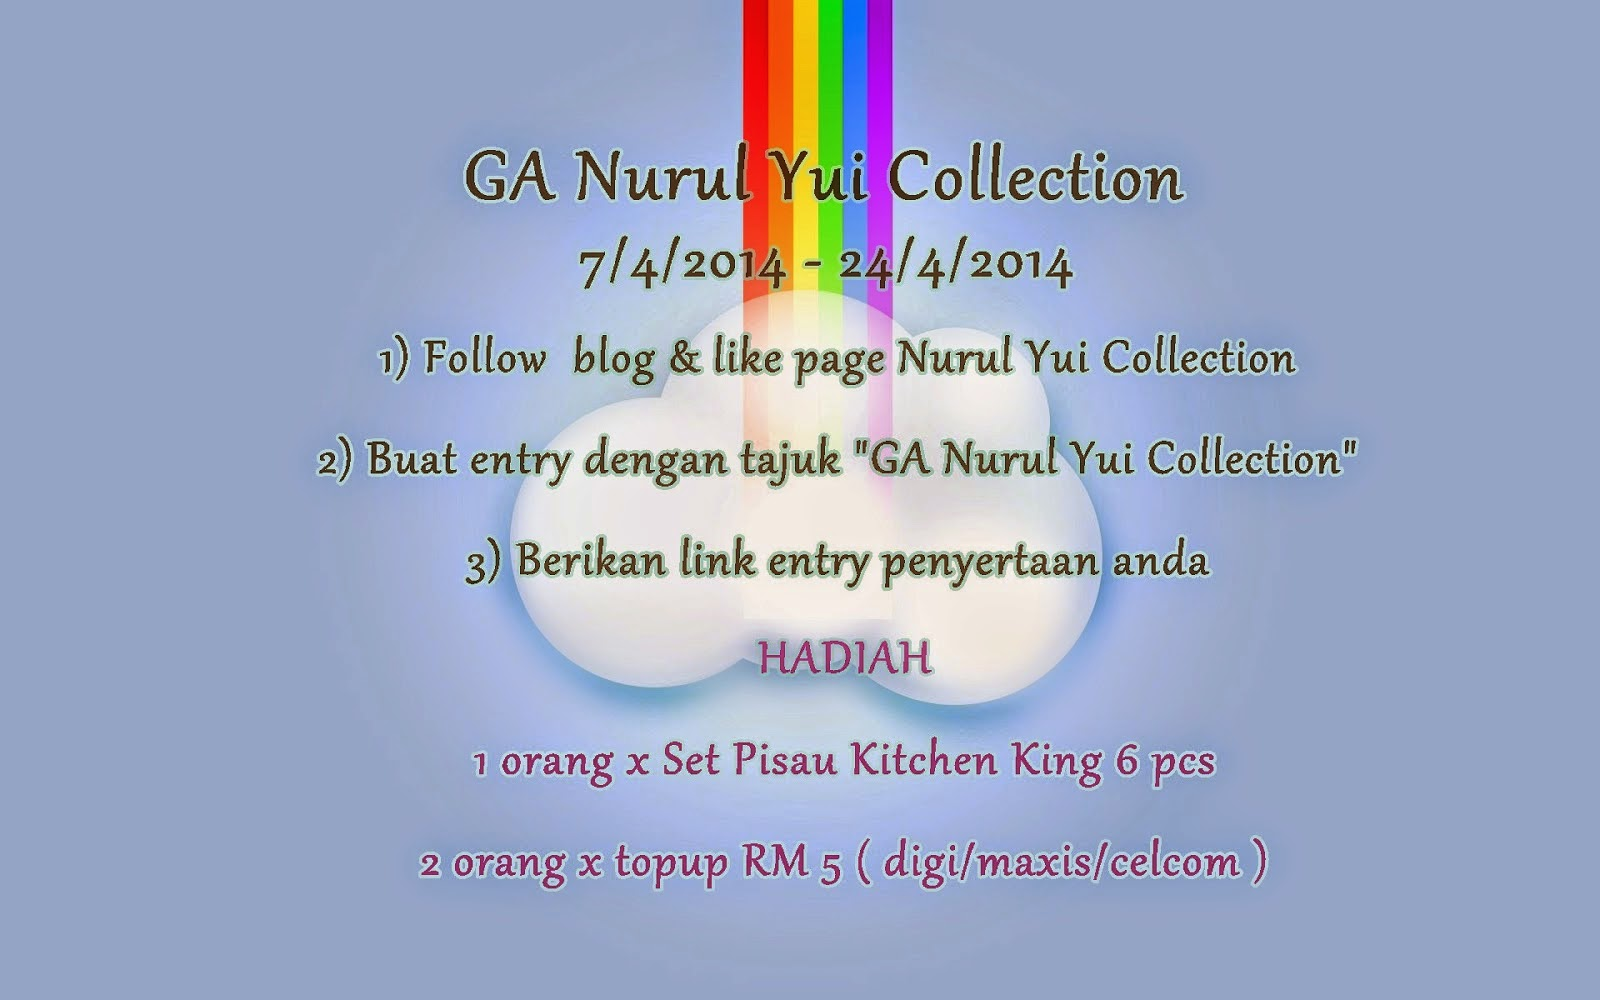 http://nusha1706.blogspot.com/2014/04/ga-nurul-yui-collection.html